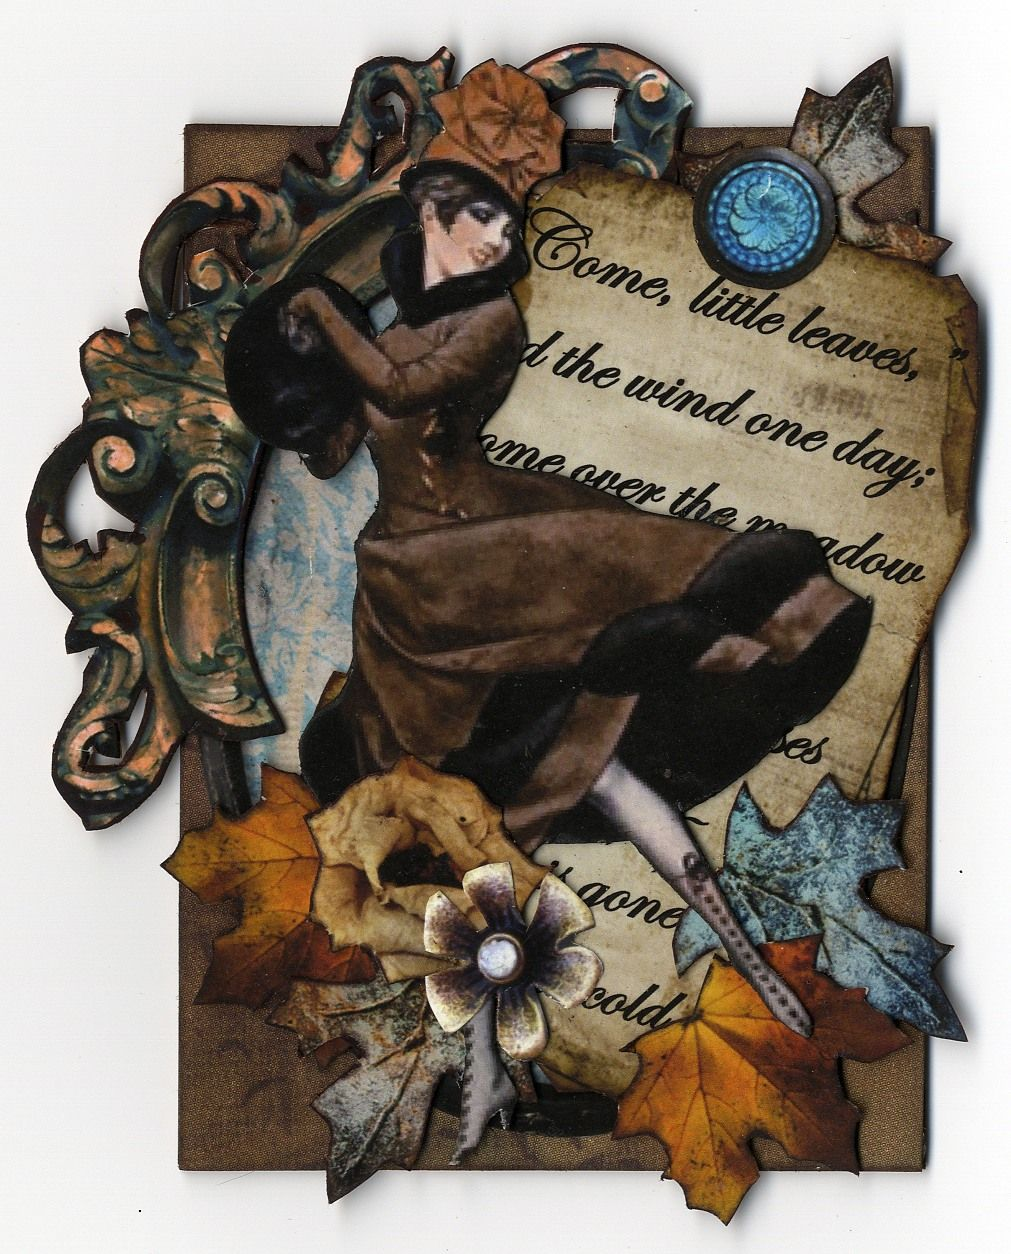 Come little leaves collage art mixed media artist